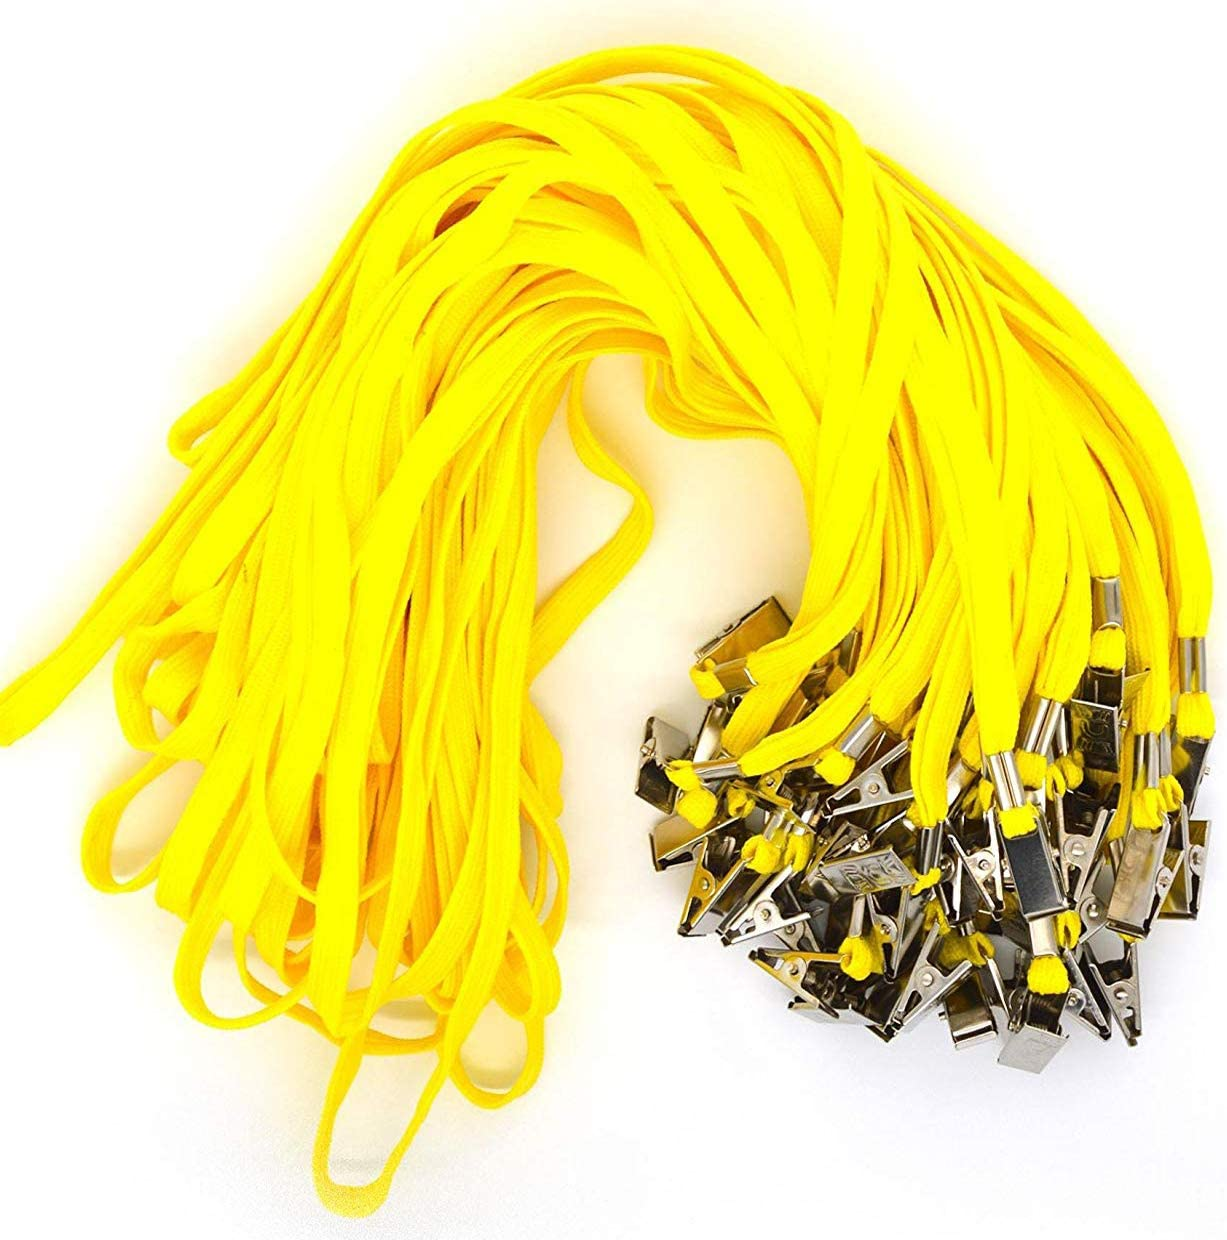 Bird Fiy 50 Pcs Cotton Lanyard Bulldog Clip 32-inch Flat Braid Neck Lanyard for Id Cards/Badges (Yellow)